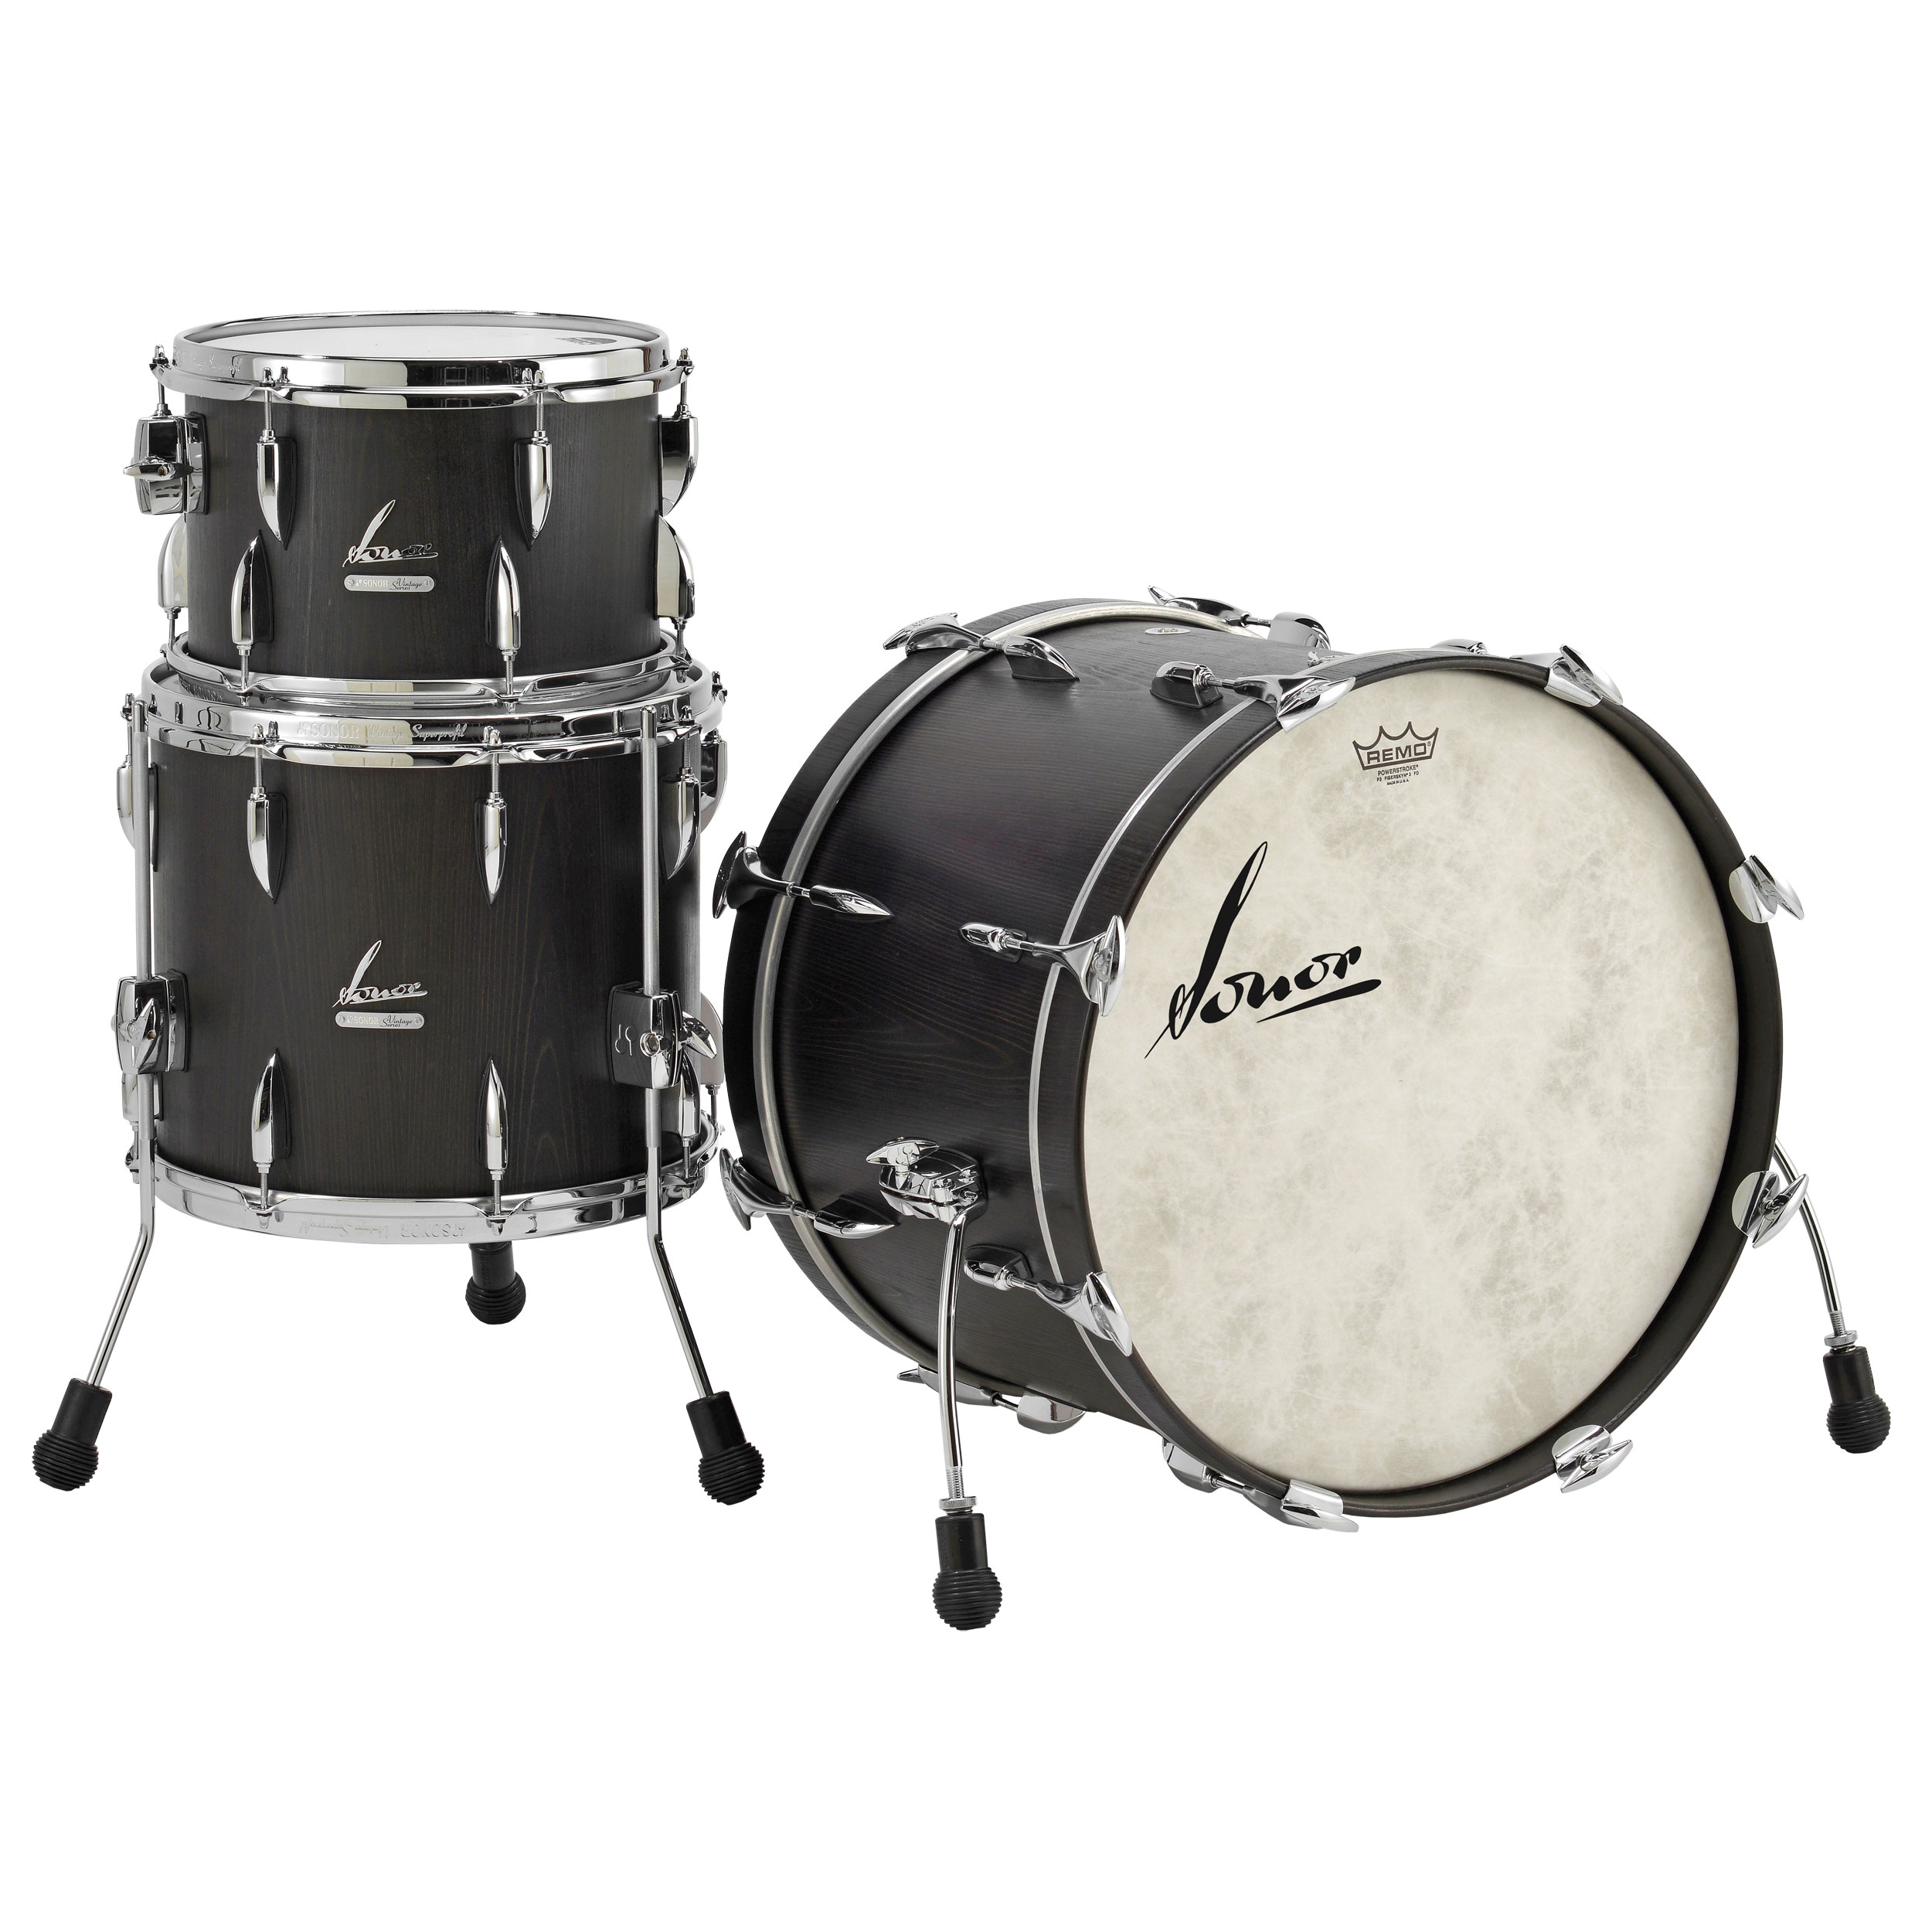 "Sonor Vintage 3-Piece Drum Set Shell Pack (20"" Bass, 12/14"" Toms)"